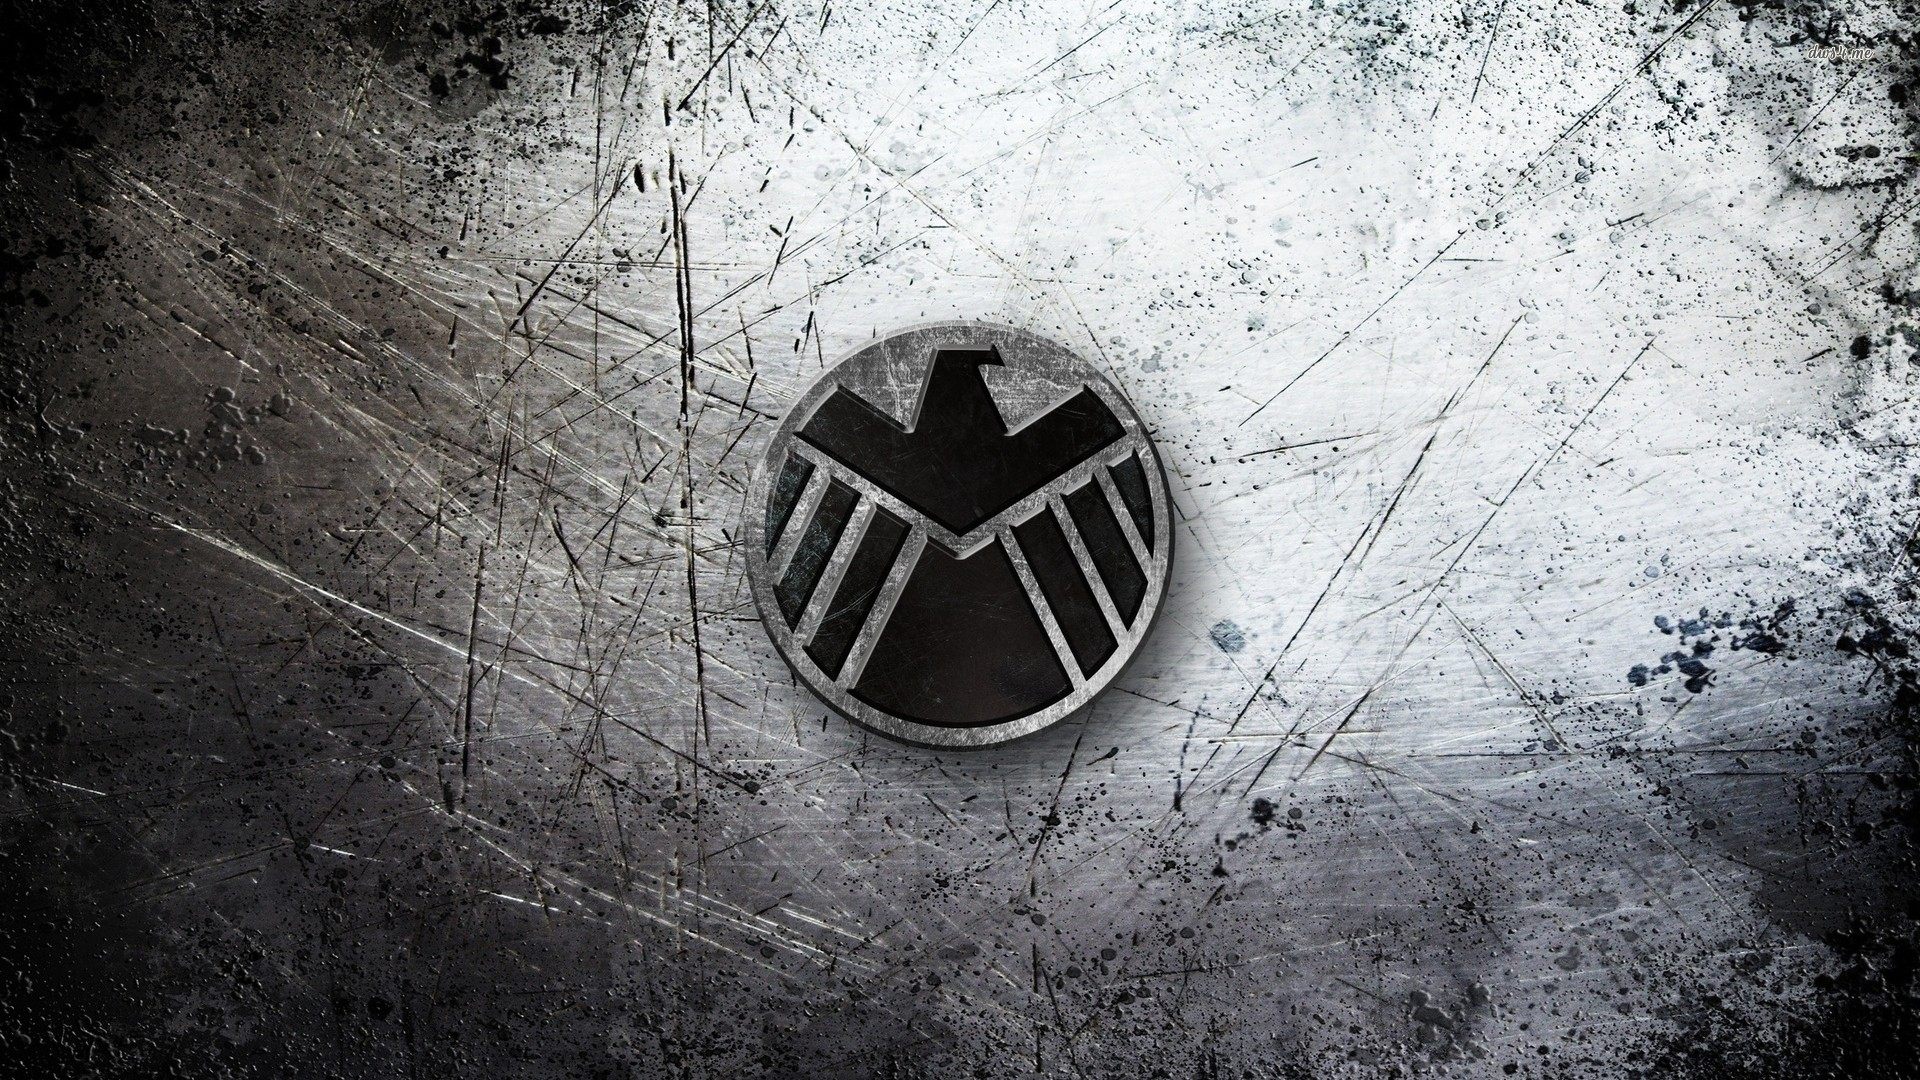 Shield Wallpaper Download Free Stunning High Resolution